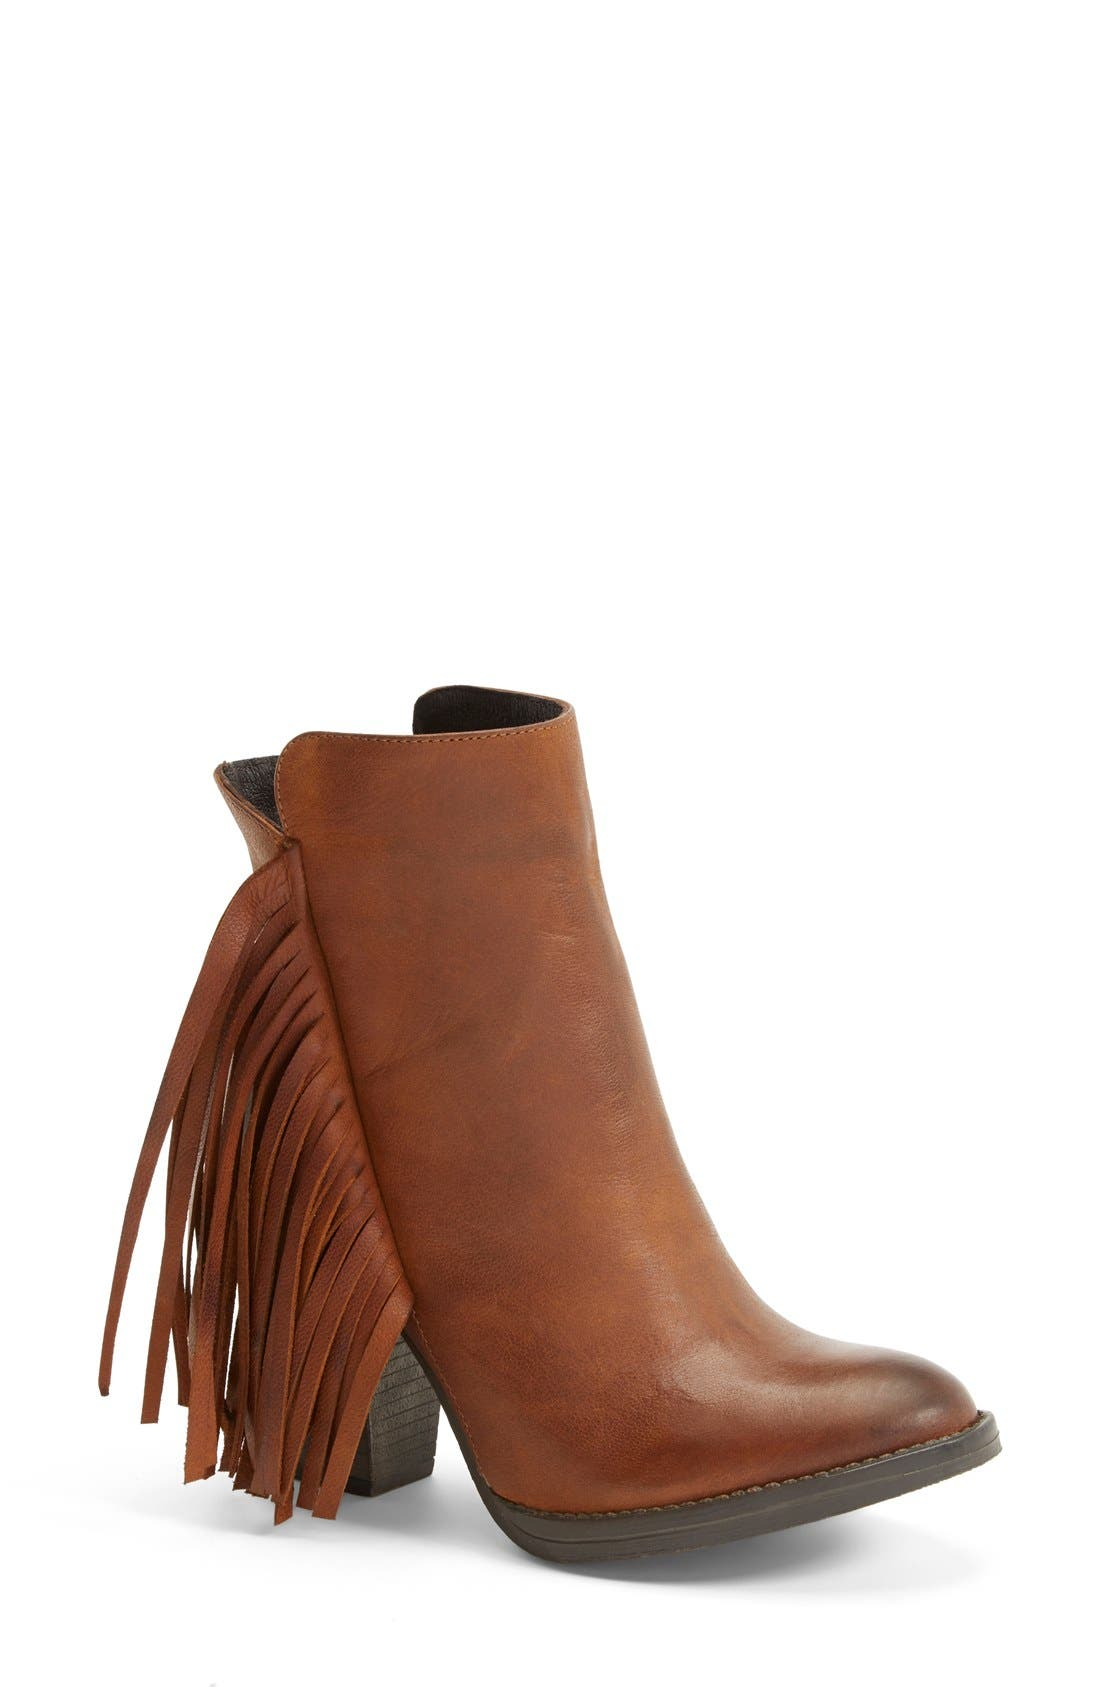 Alternate Image 1 Selected - Steve Madden 'Woodstck' Fringe Bootie (Women)